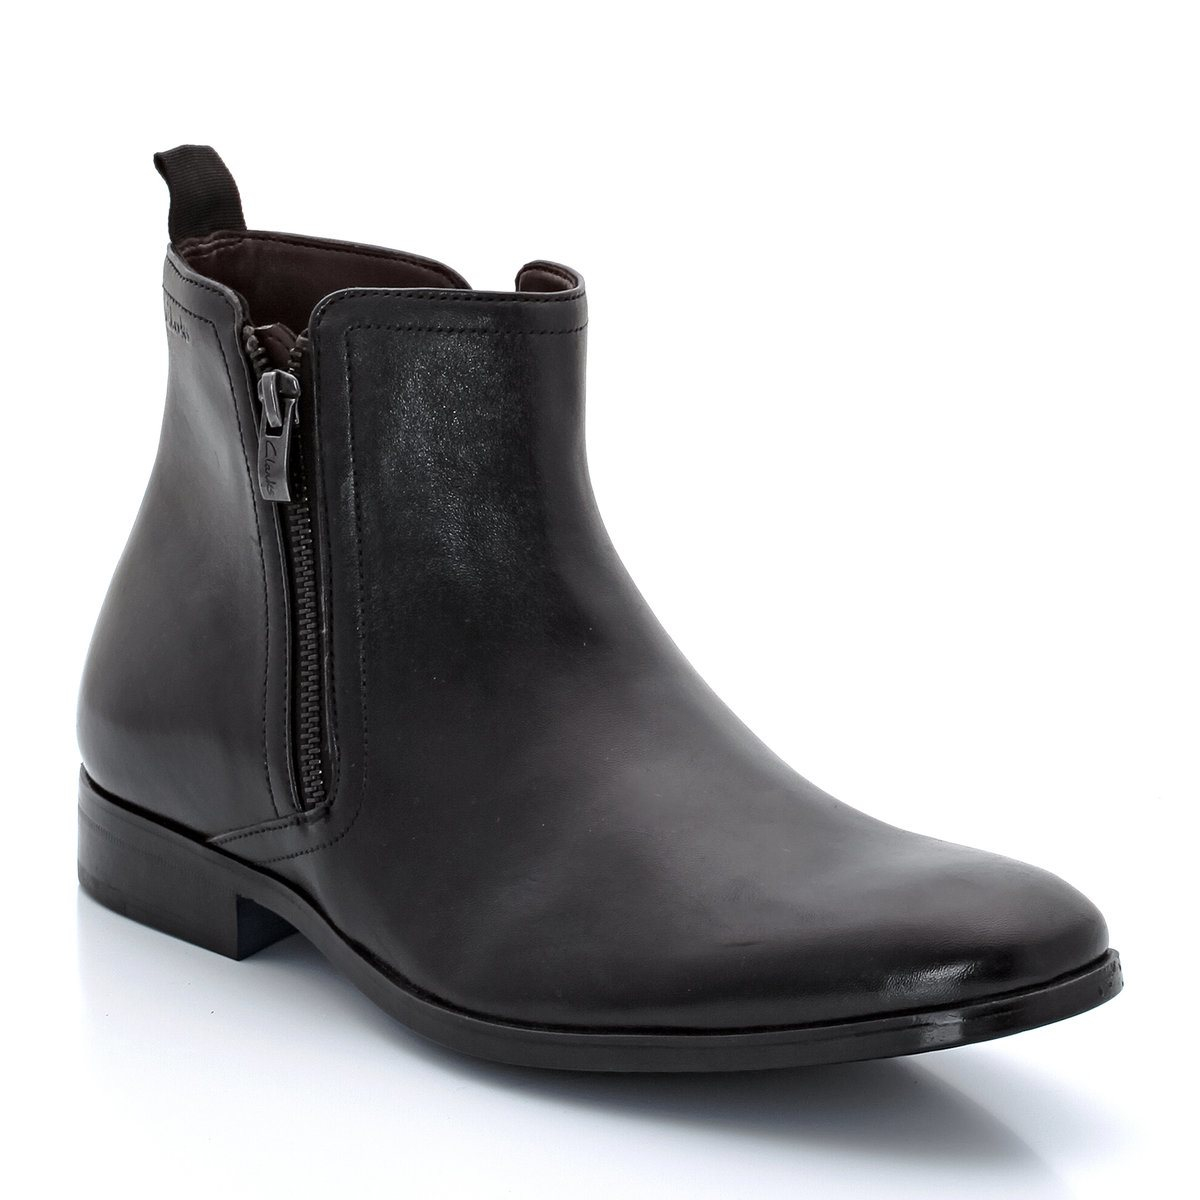 clarks banfieldzip leather zip up boots in black for